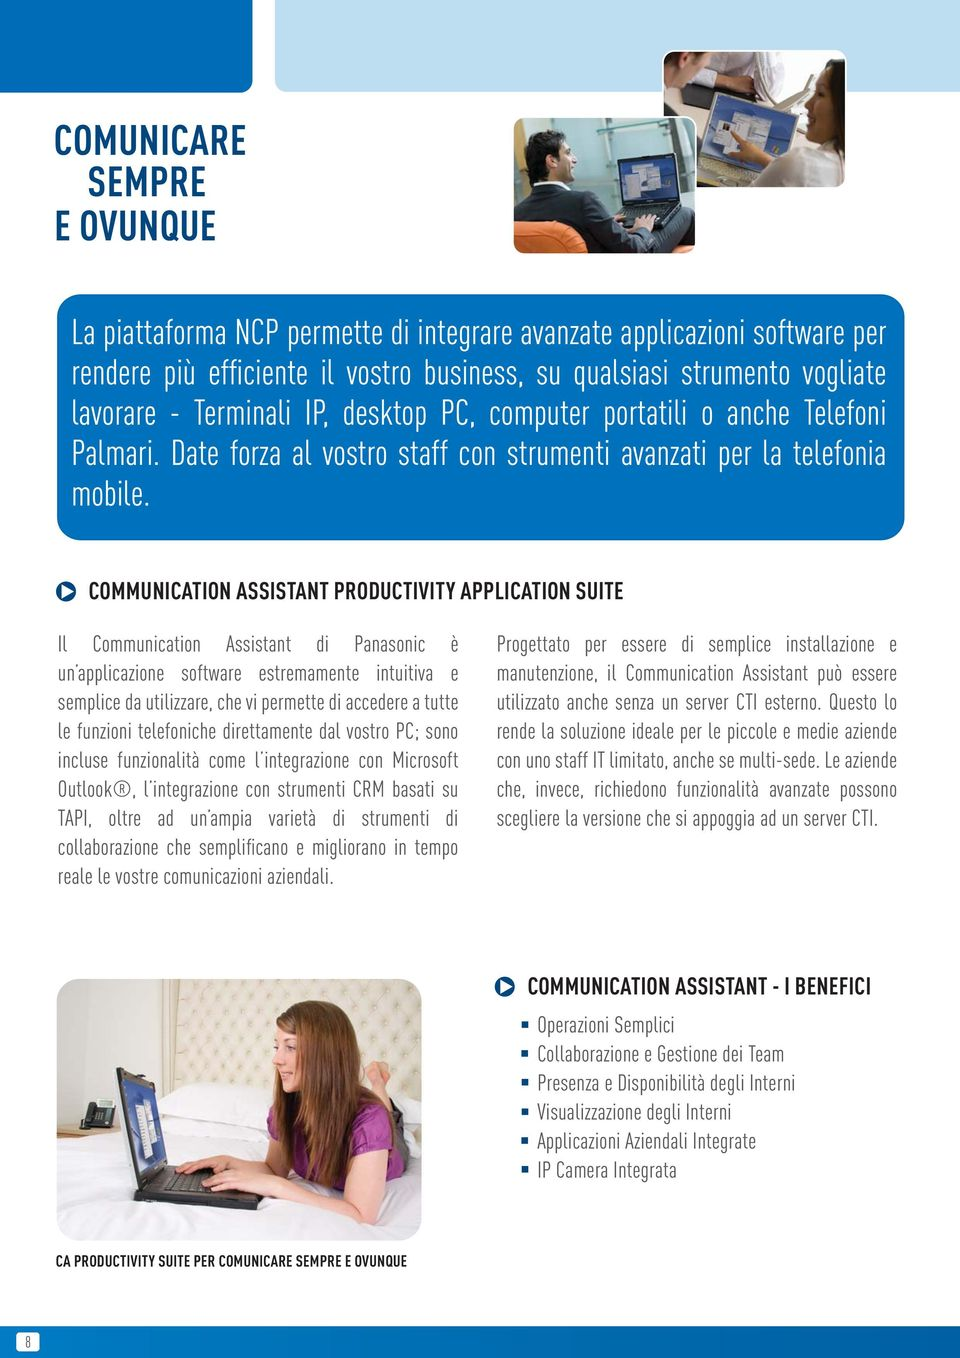 COMMUNICATION ASSISTANT PRODUCTIVITY APPLICATION SUITE Il Communication Assistant di Panasonic è un applicazione software estremamente intuitiva e semplice da utilizzare, che vi permette di accedere